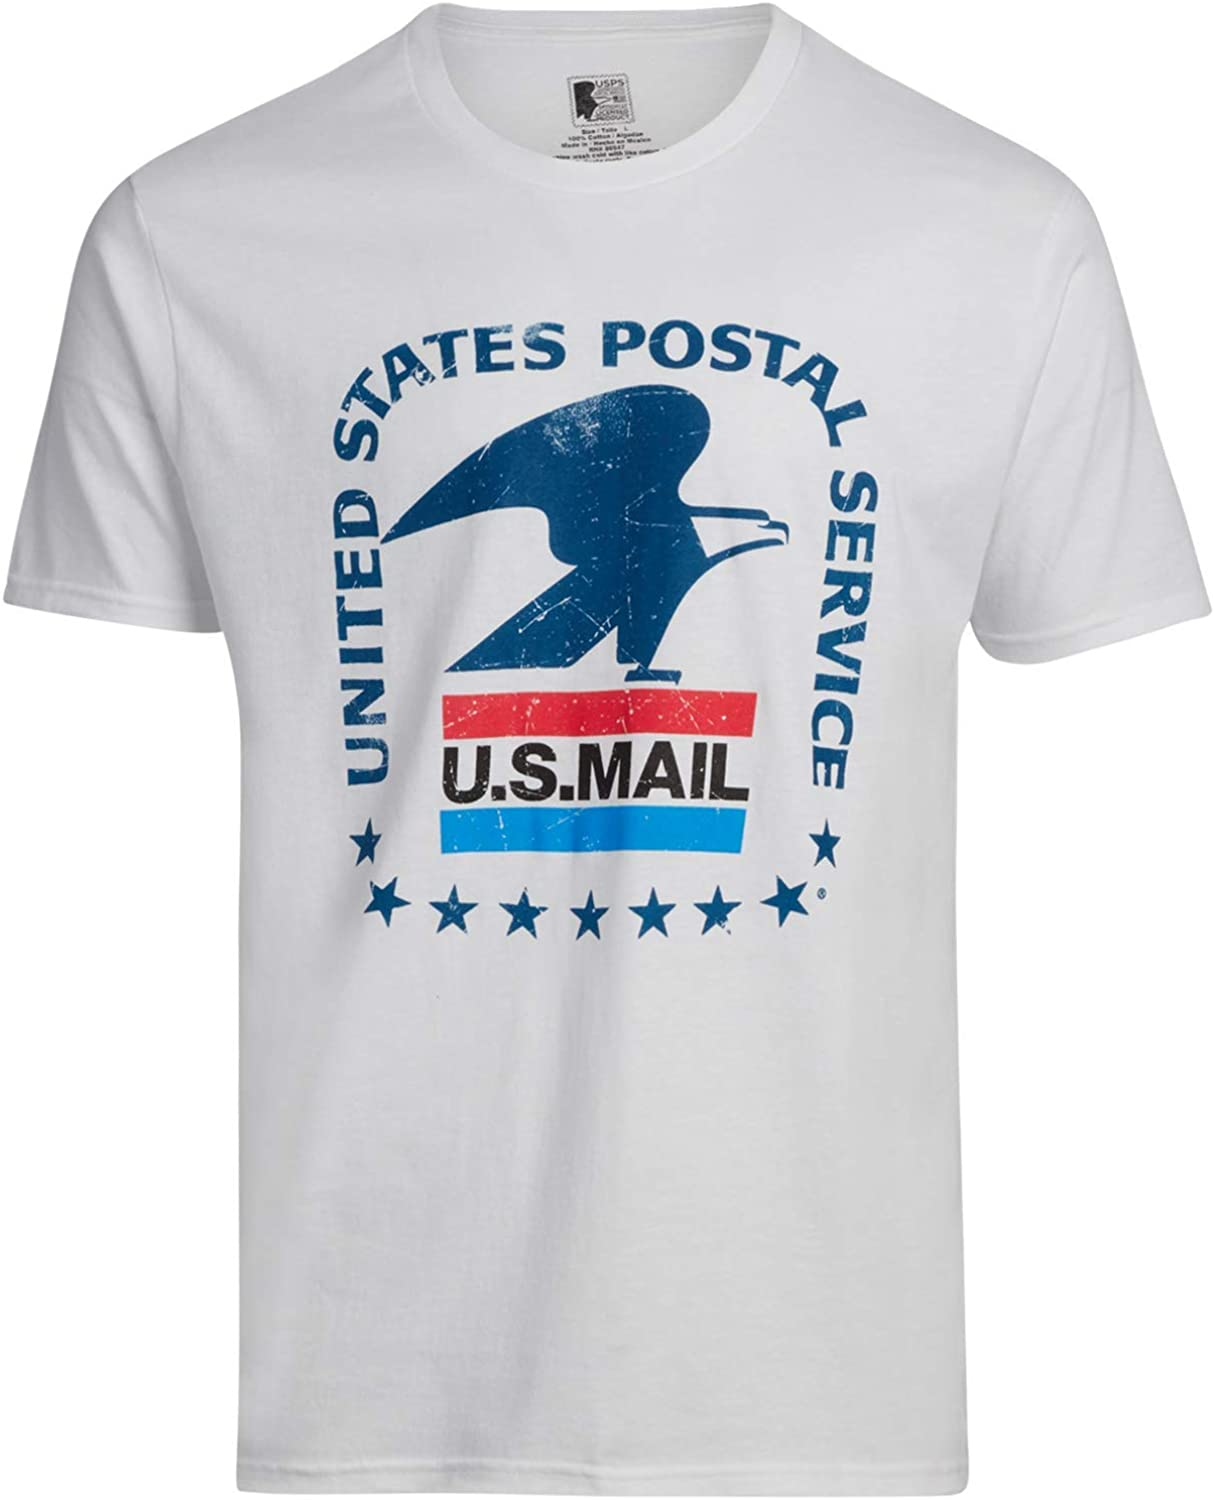 United States Postal Service Men's Short Sleeve Crew Neck Cotton Graphic T-Shirt